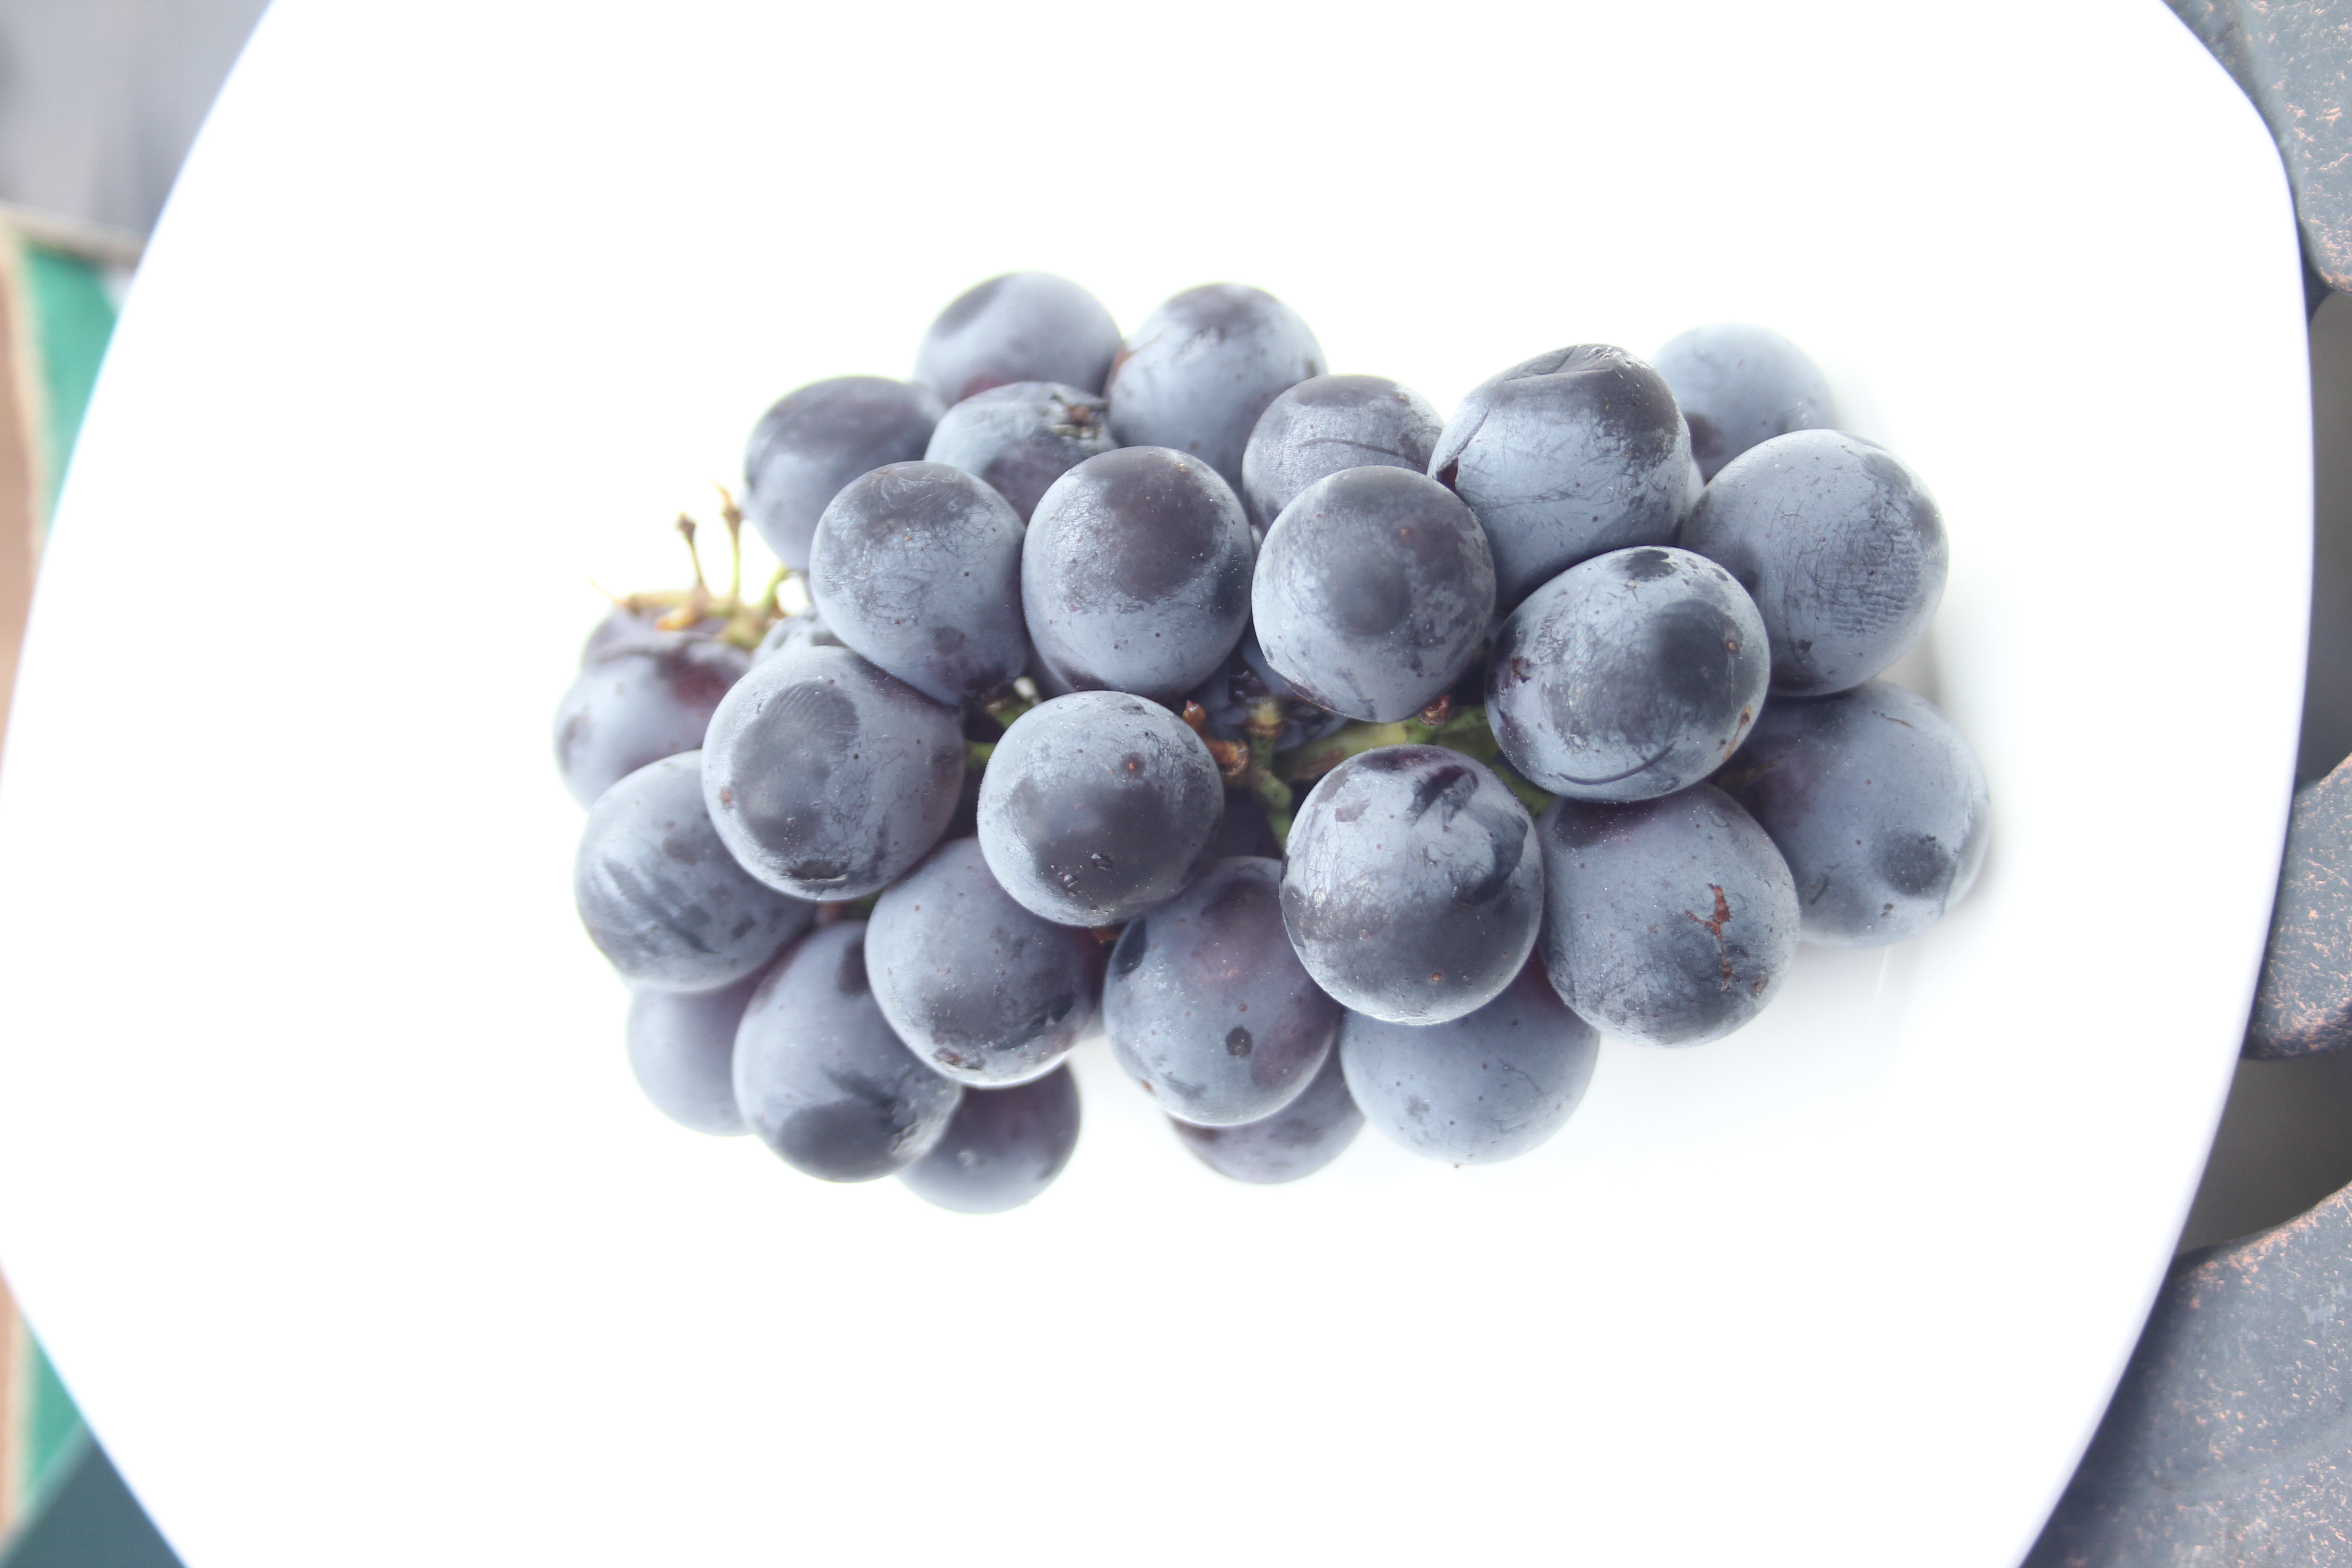 grape seed extract improves cholesterol and cardiovascular risk factors in obese and overweight people